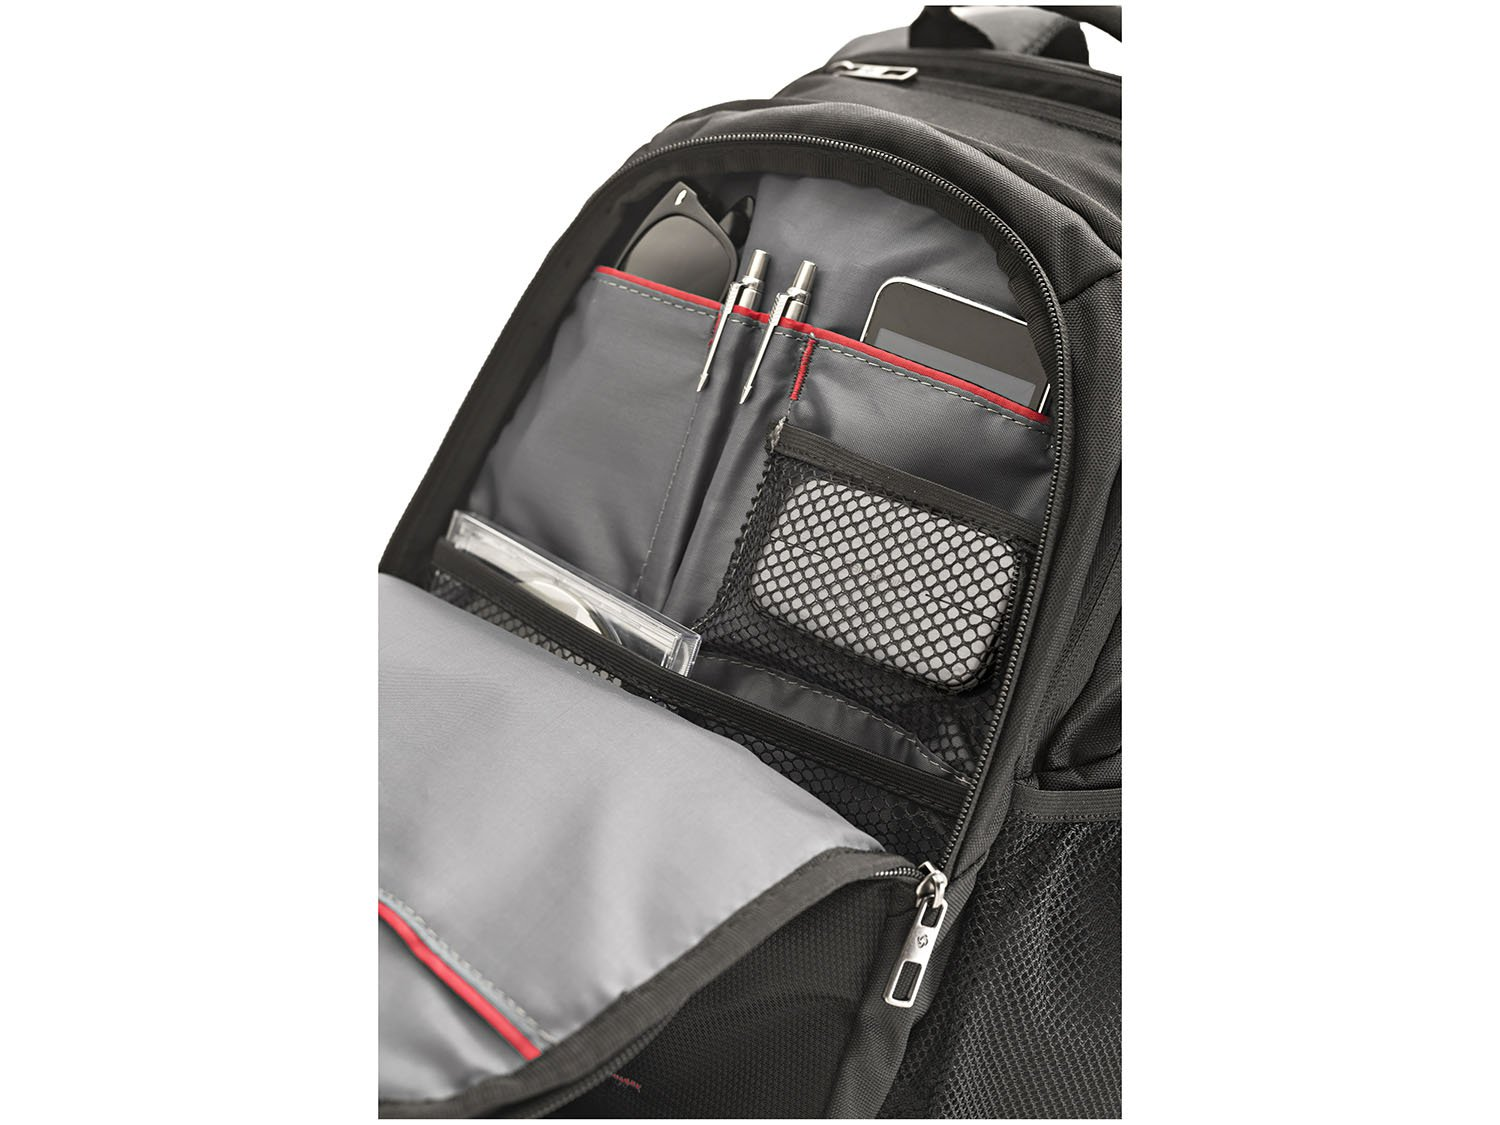 Mochila Samsonite para Notebook Guard IT Preto - 13